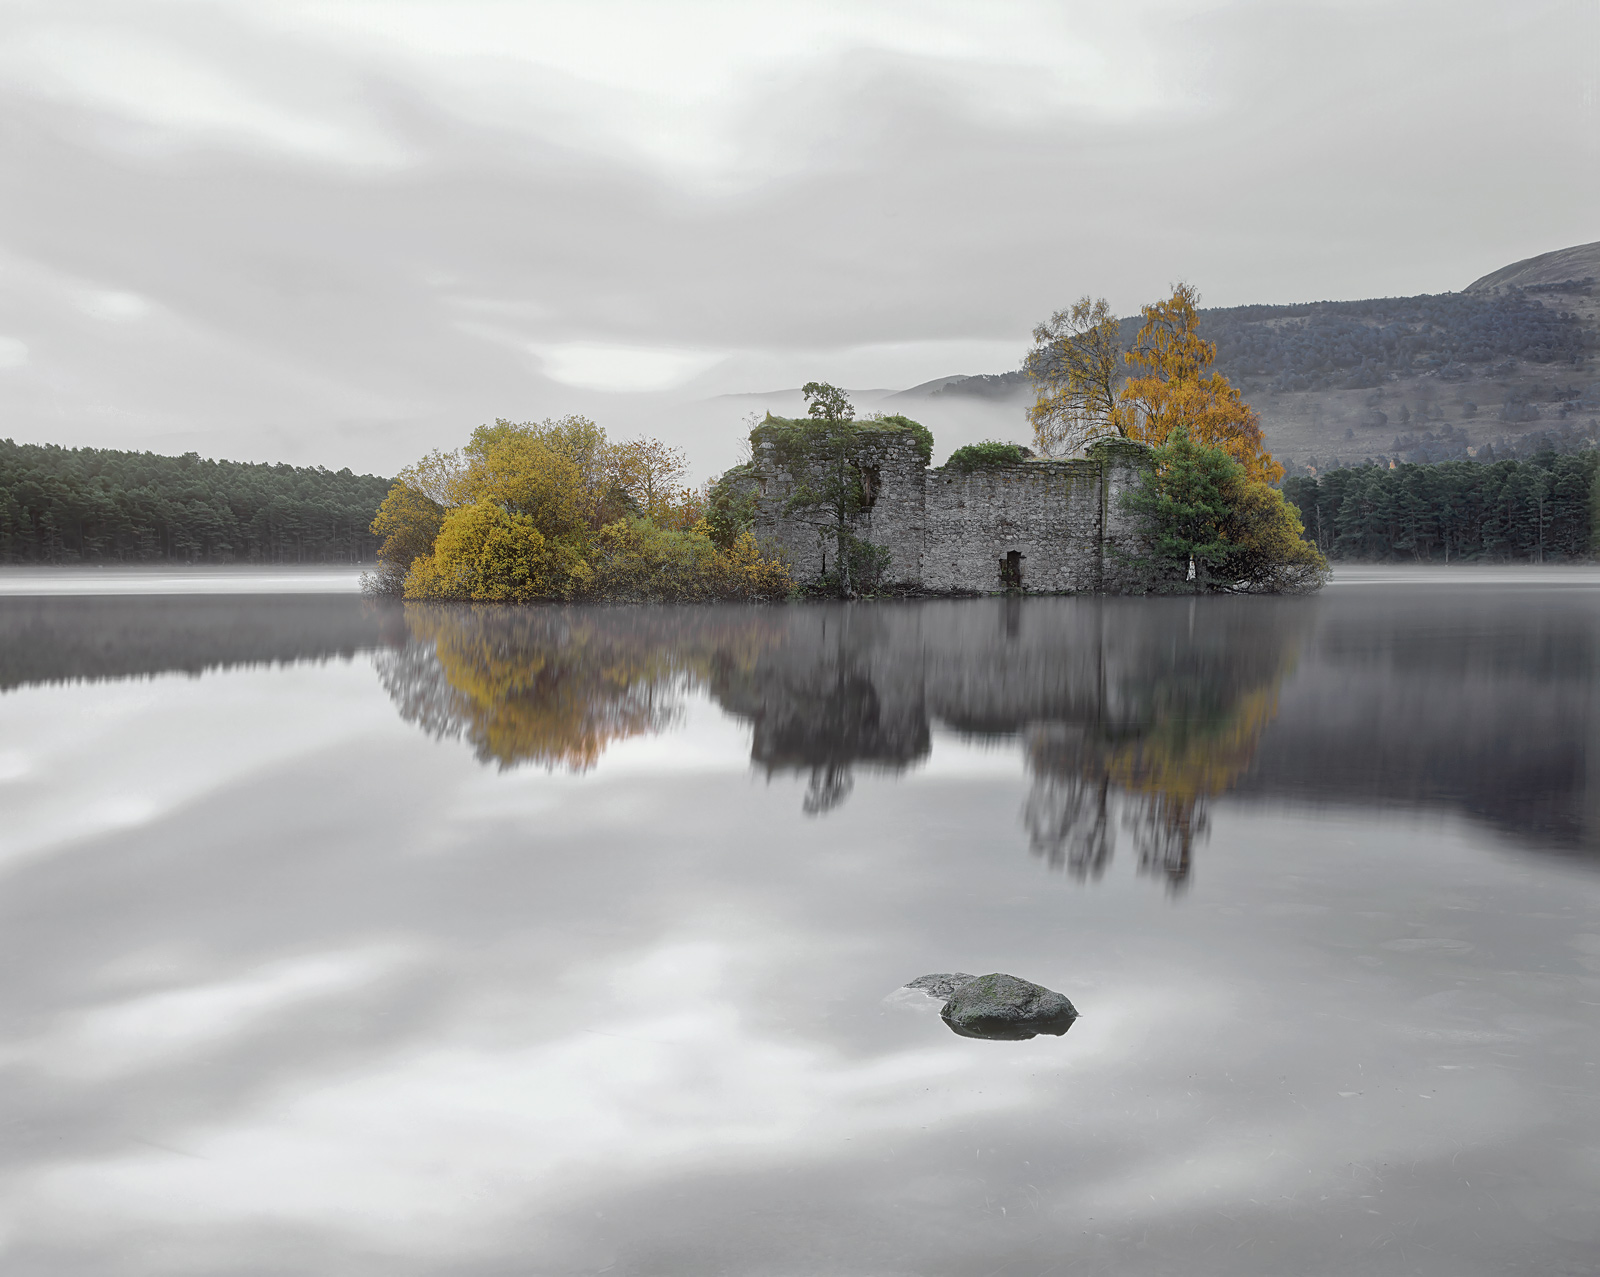 A dull grey autumnal morning was actually ideal for recreating the atmosphere and tranquility that the island castle naturally...